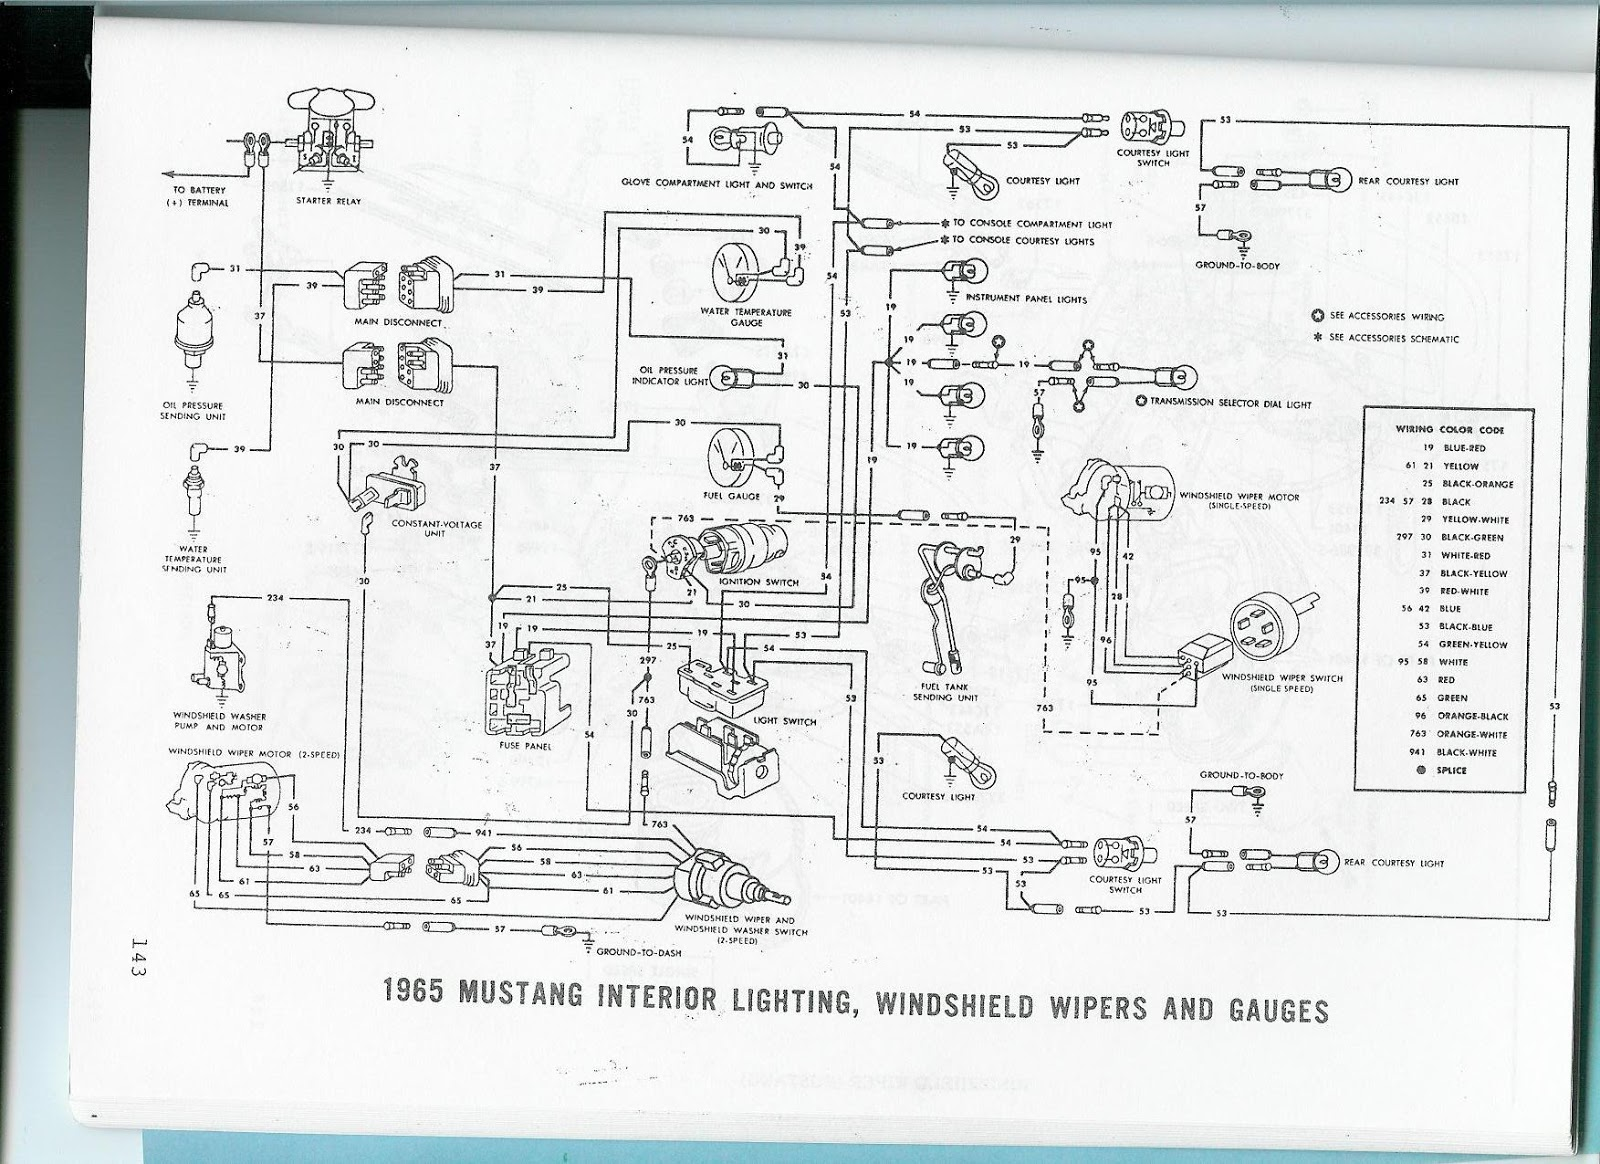 Tremendous 1965 Mustang Fuse Diagram Wiring Library Wiring Cloud Loplapiotaidewilluminateatxorg